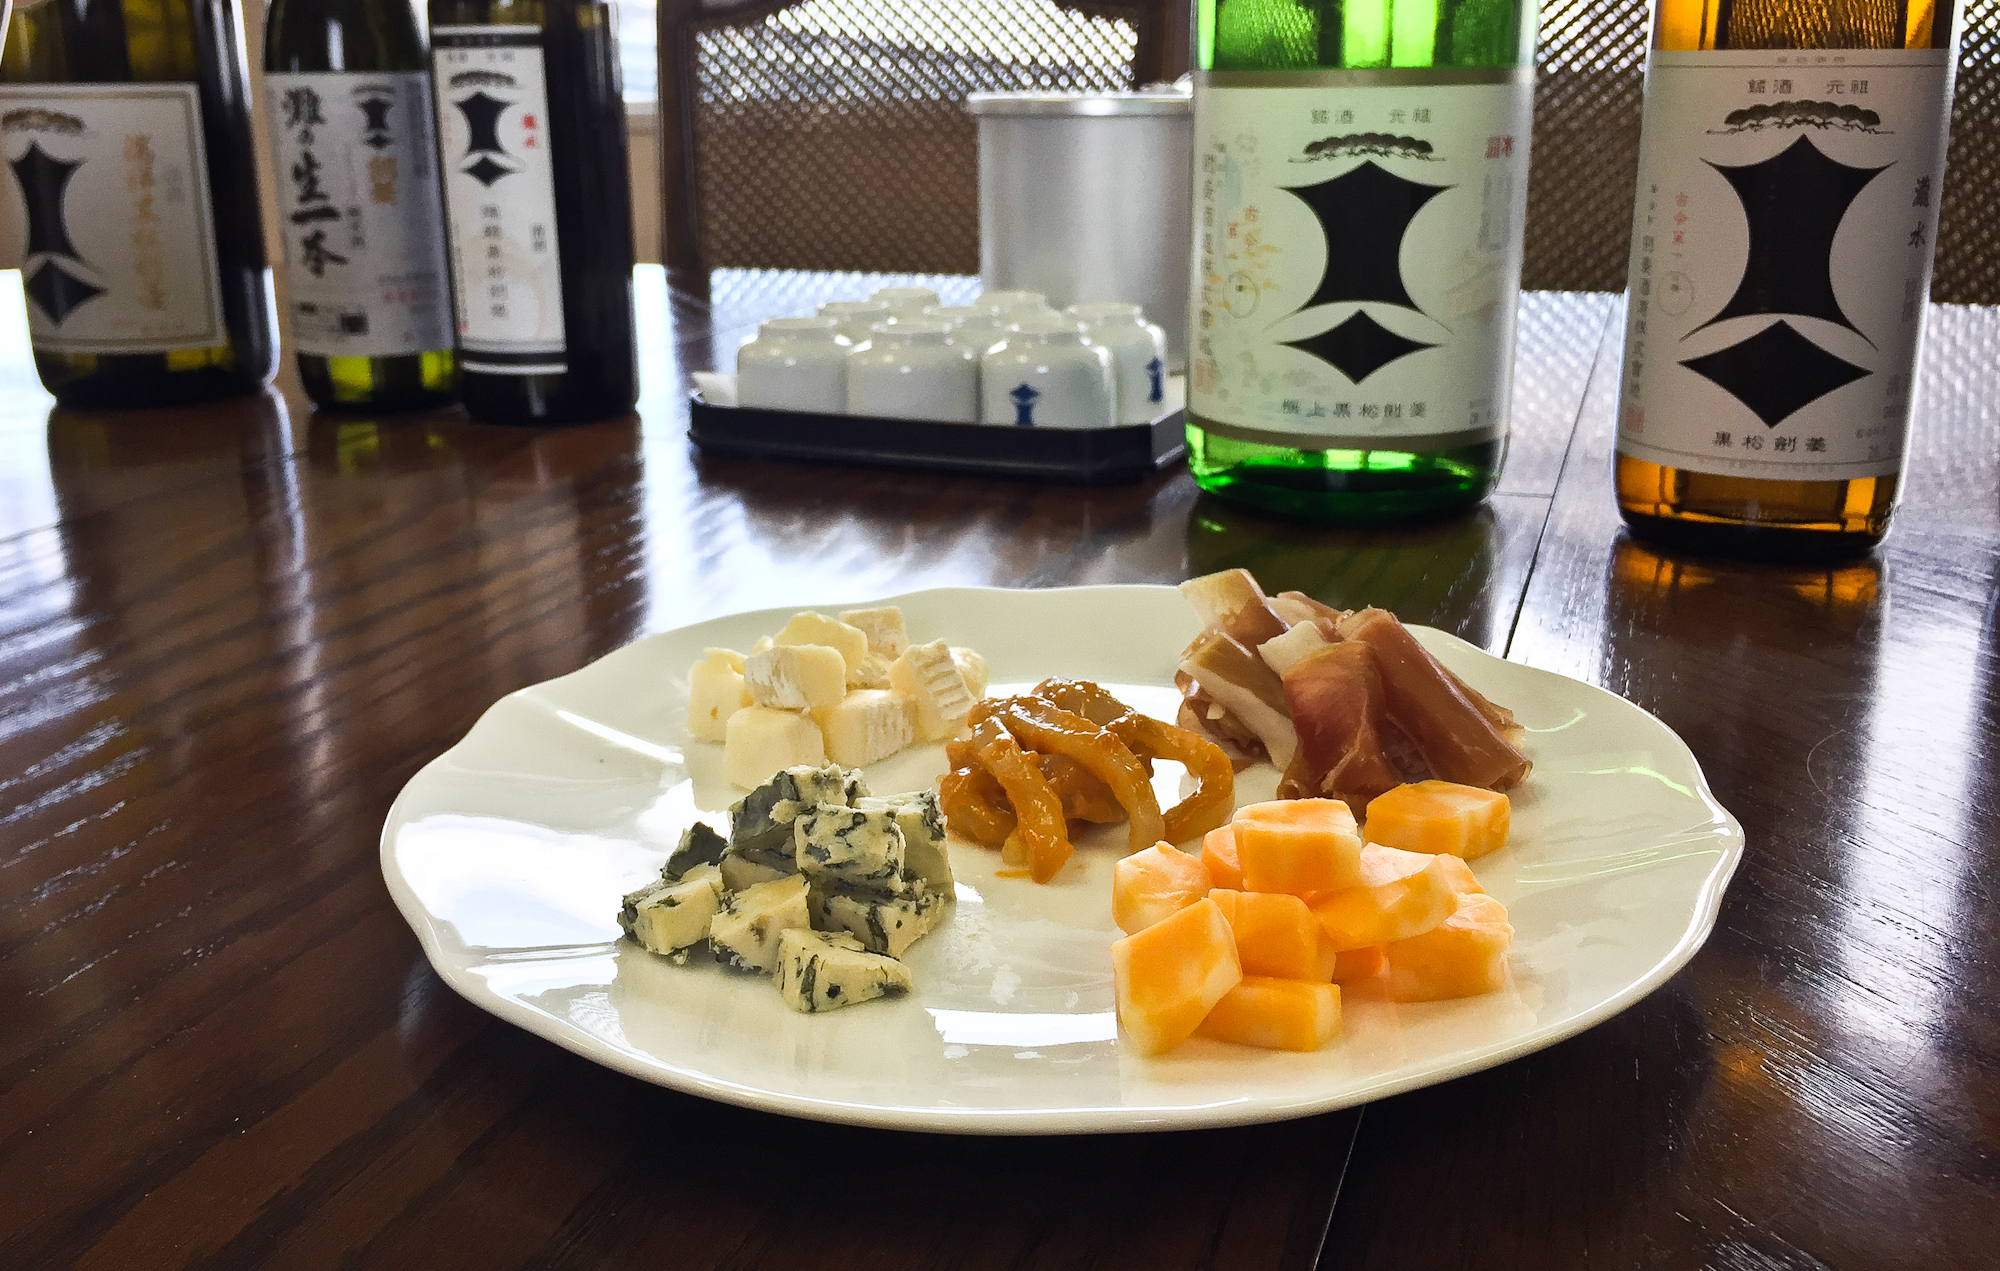 Sake and Cheese.  Sake tasting with the owners of Kenbishi. This was eye-opening, and you can rest assured sake and cheese will be coming to Shiba Ramen and The Periodic Table.